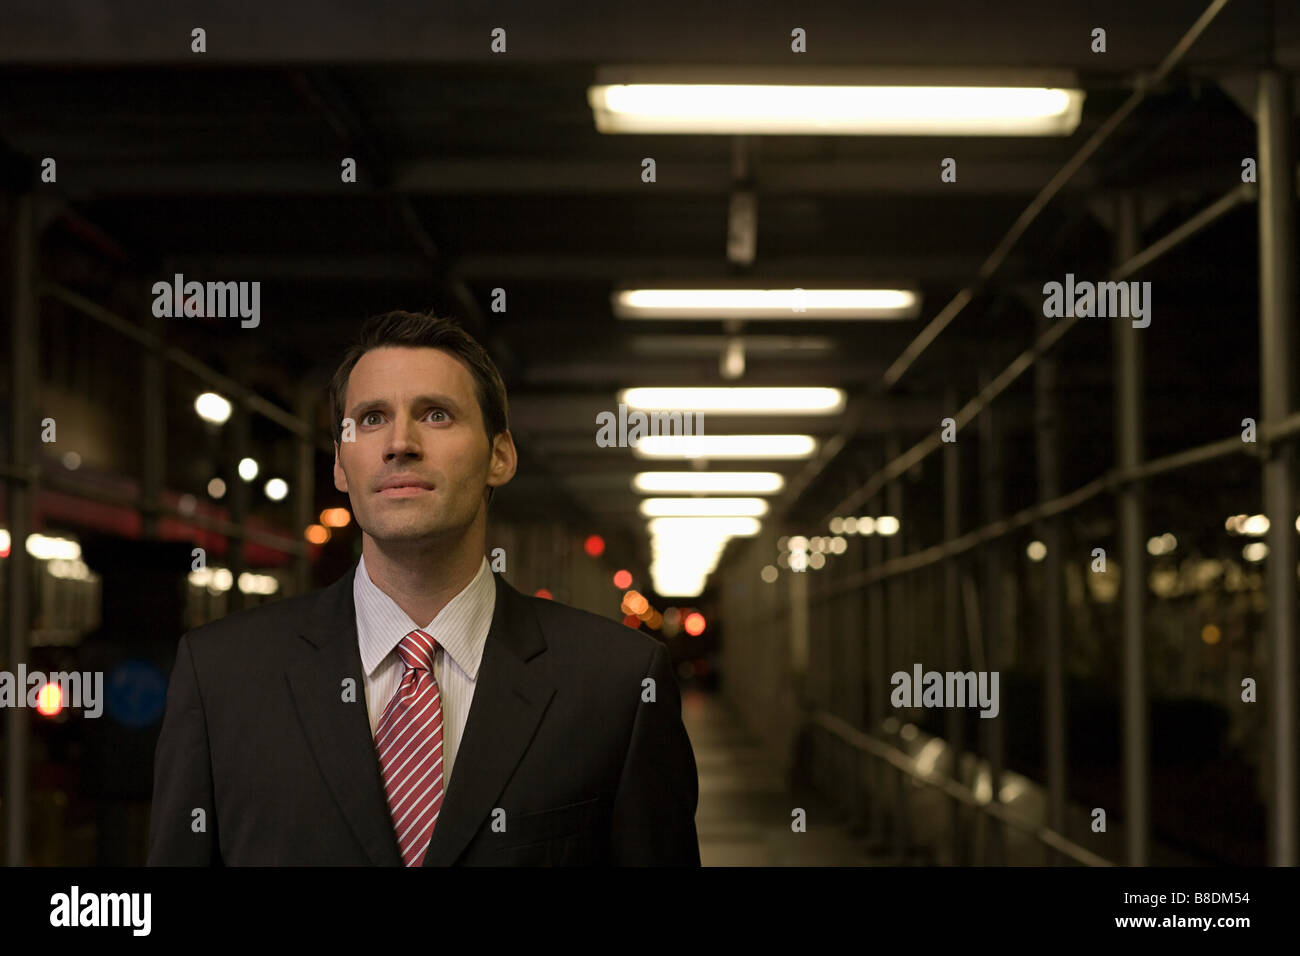 Stunned looking businessman in a walkway - Stock Image